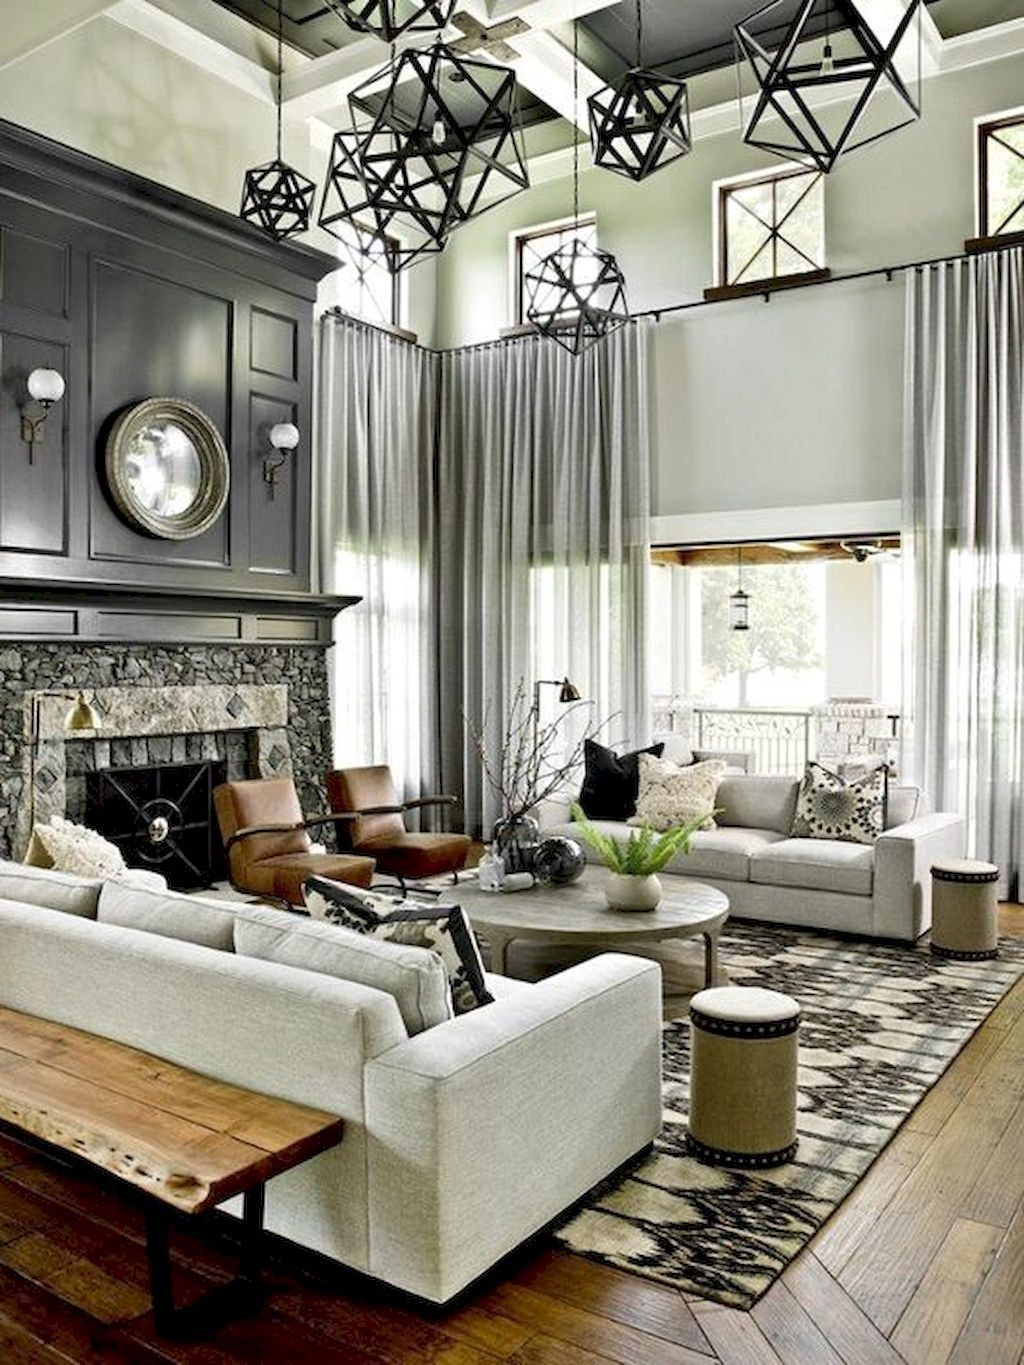 Wondrous What Are The Prime 5 Residence Adorning Concepts To Liven Up In 2020 Transitional Living Rooms Transitional Style Living Room Transitional Living Room Design